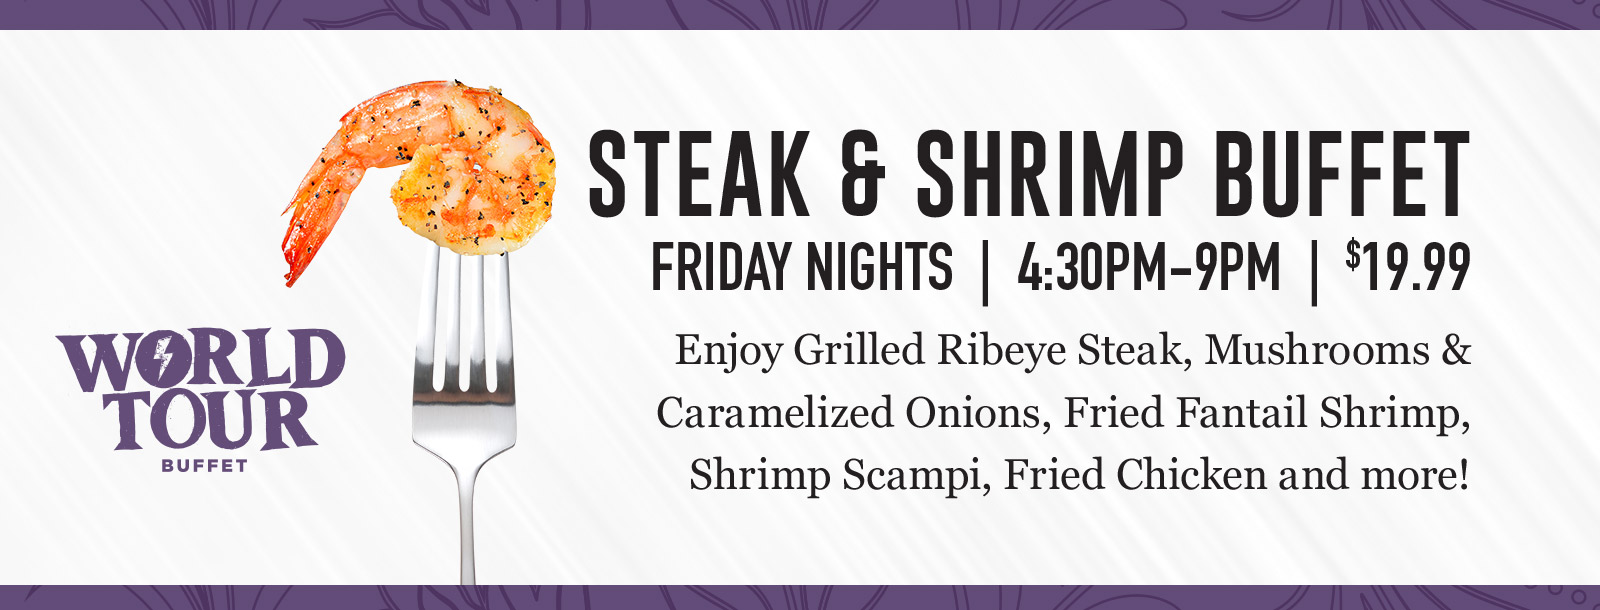 steak shrimp buffet